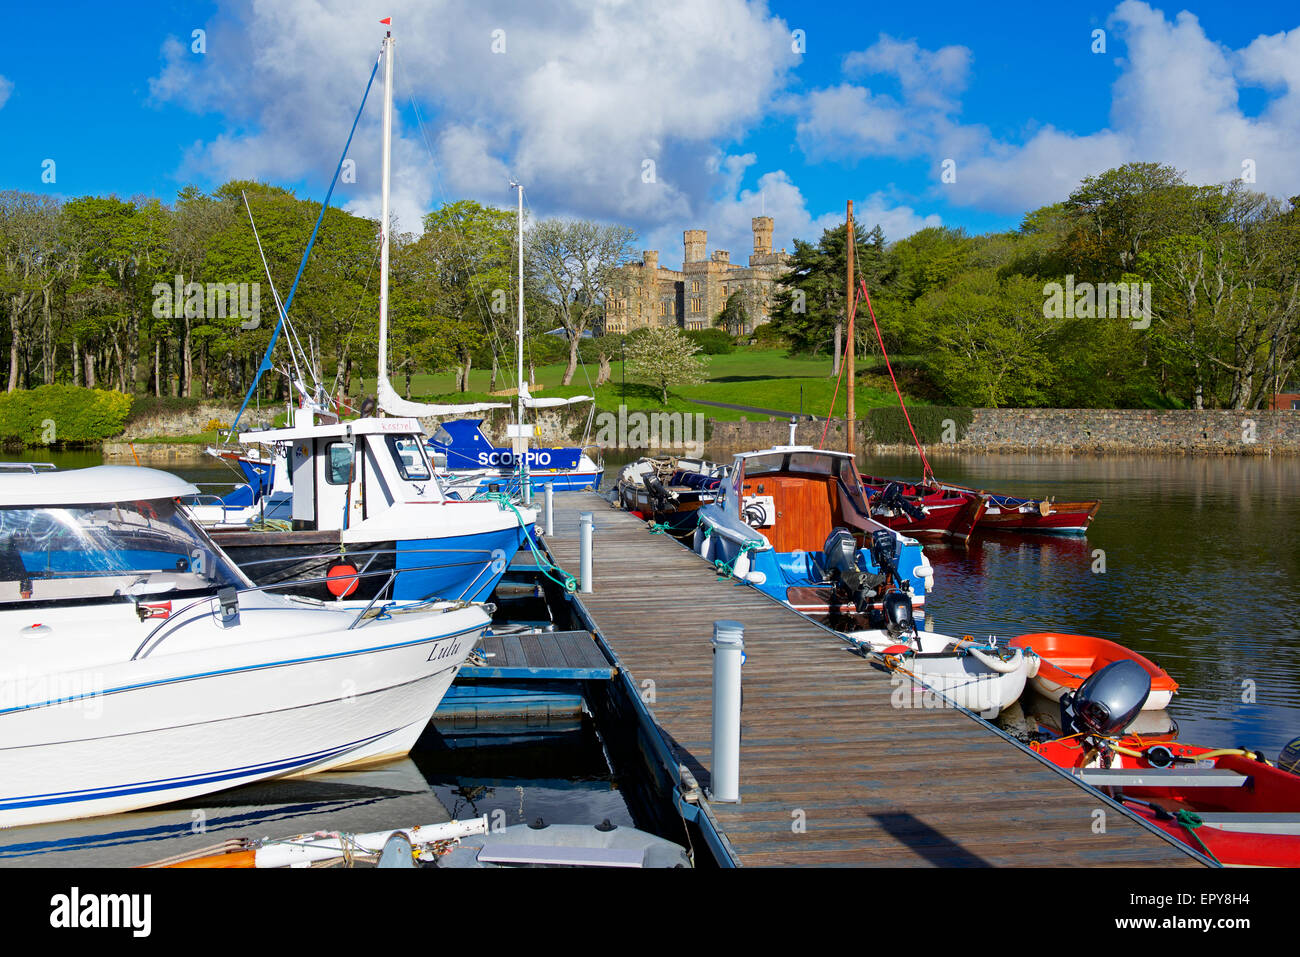 Lewis Castle and the marina, Stornoway, Isle of Lewis, Outer Hebrides, Scotland UK - Stock Image